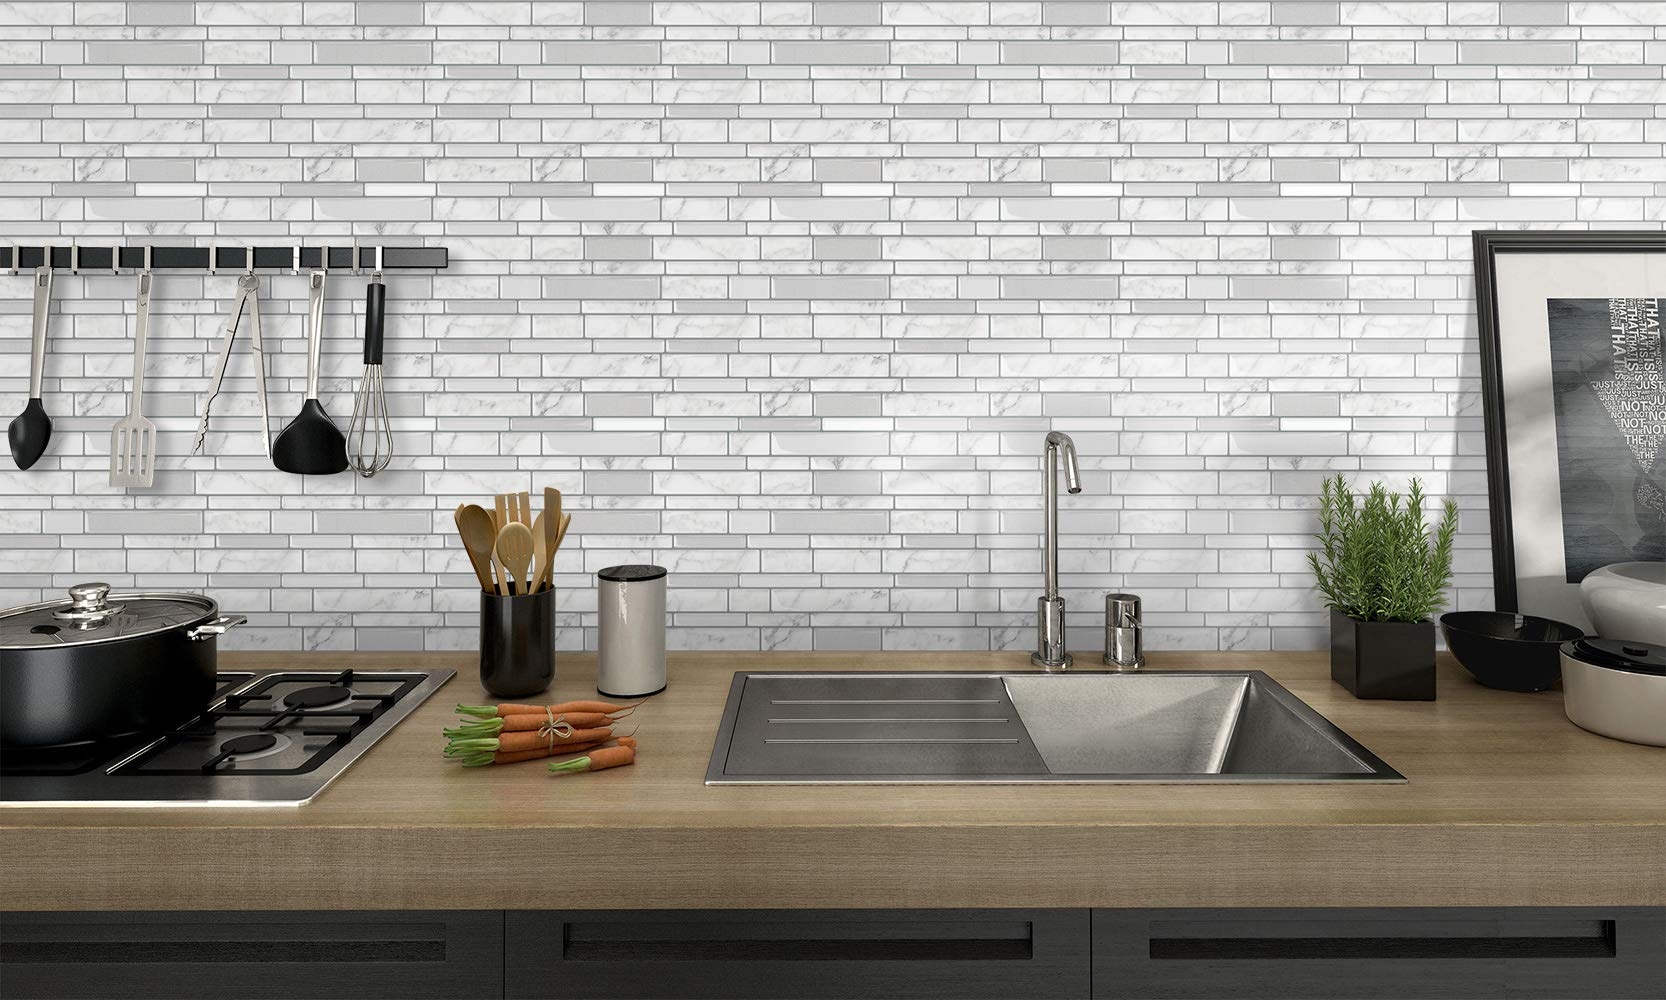 Tic Tac Tiles - Premium Anti Mold Peel and Stick Wall Tile Backsplash in Polito Design (Blanco, 6) by Tic Tac Tiles (Image #6)